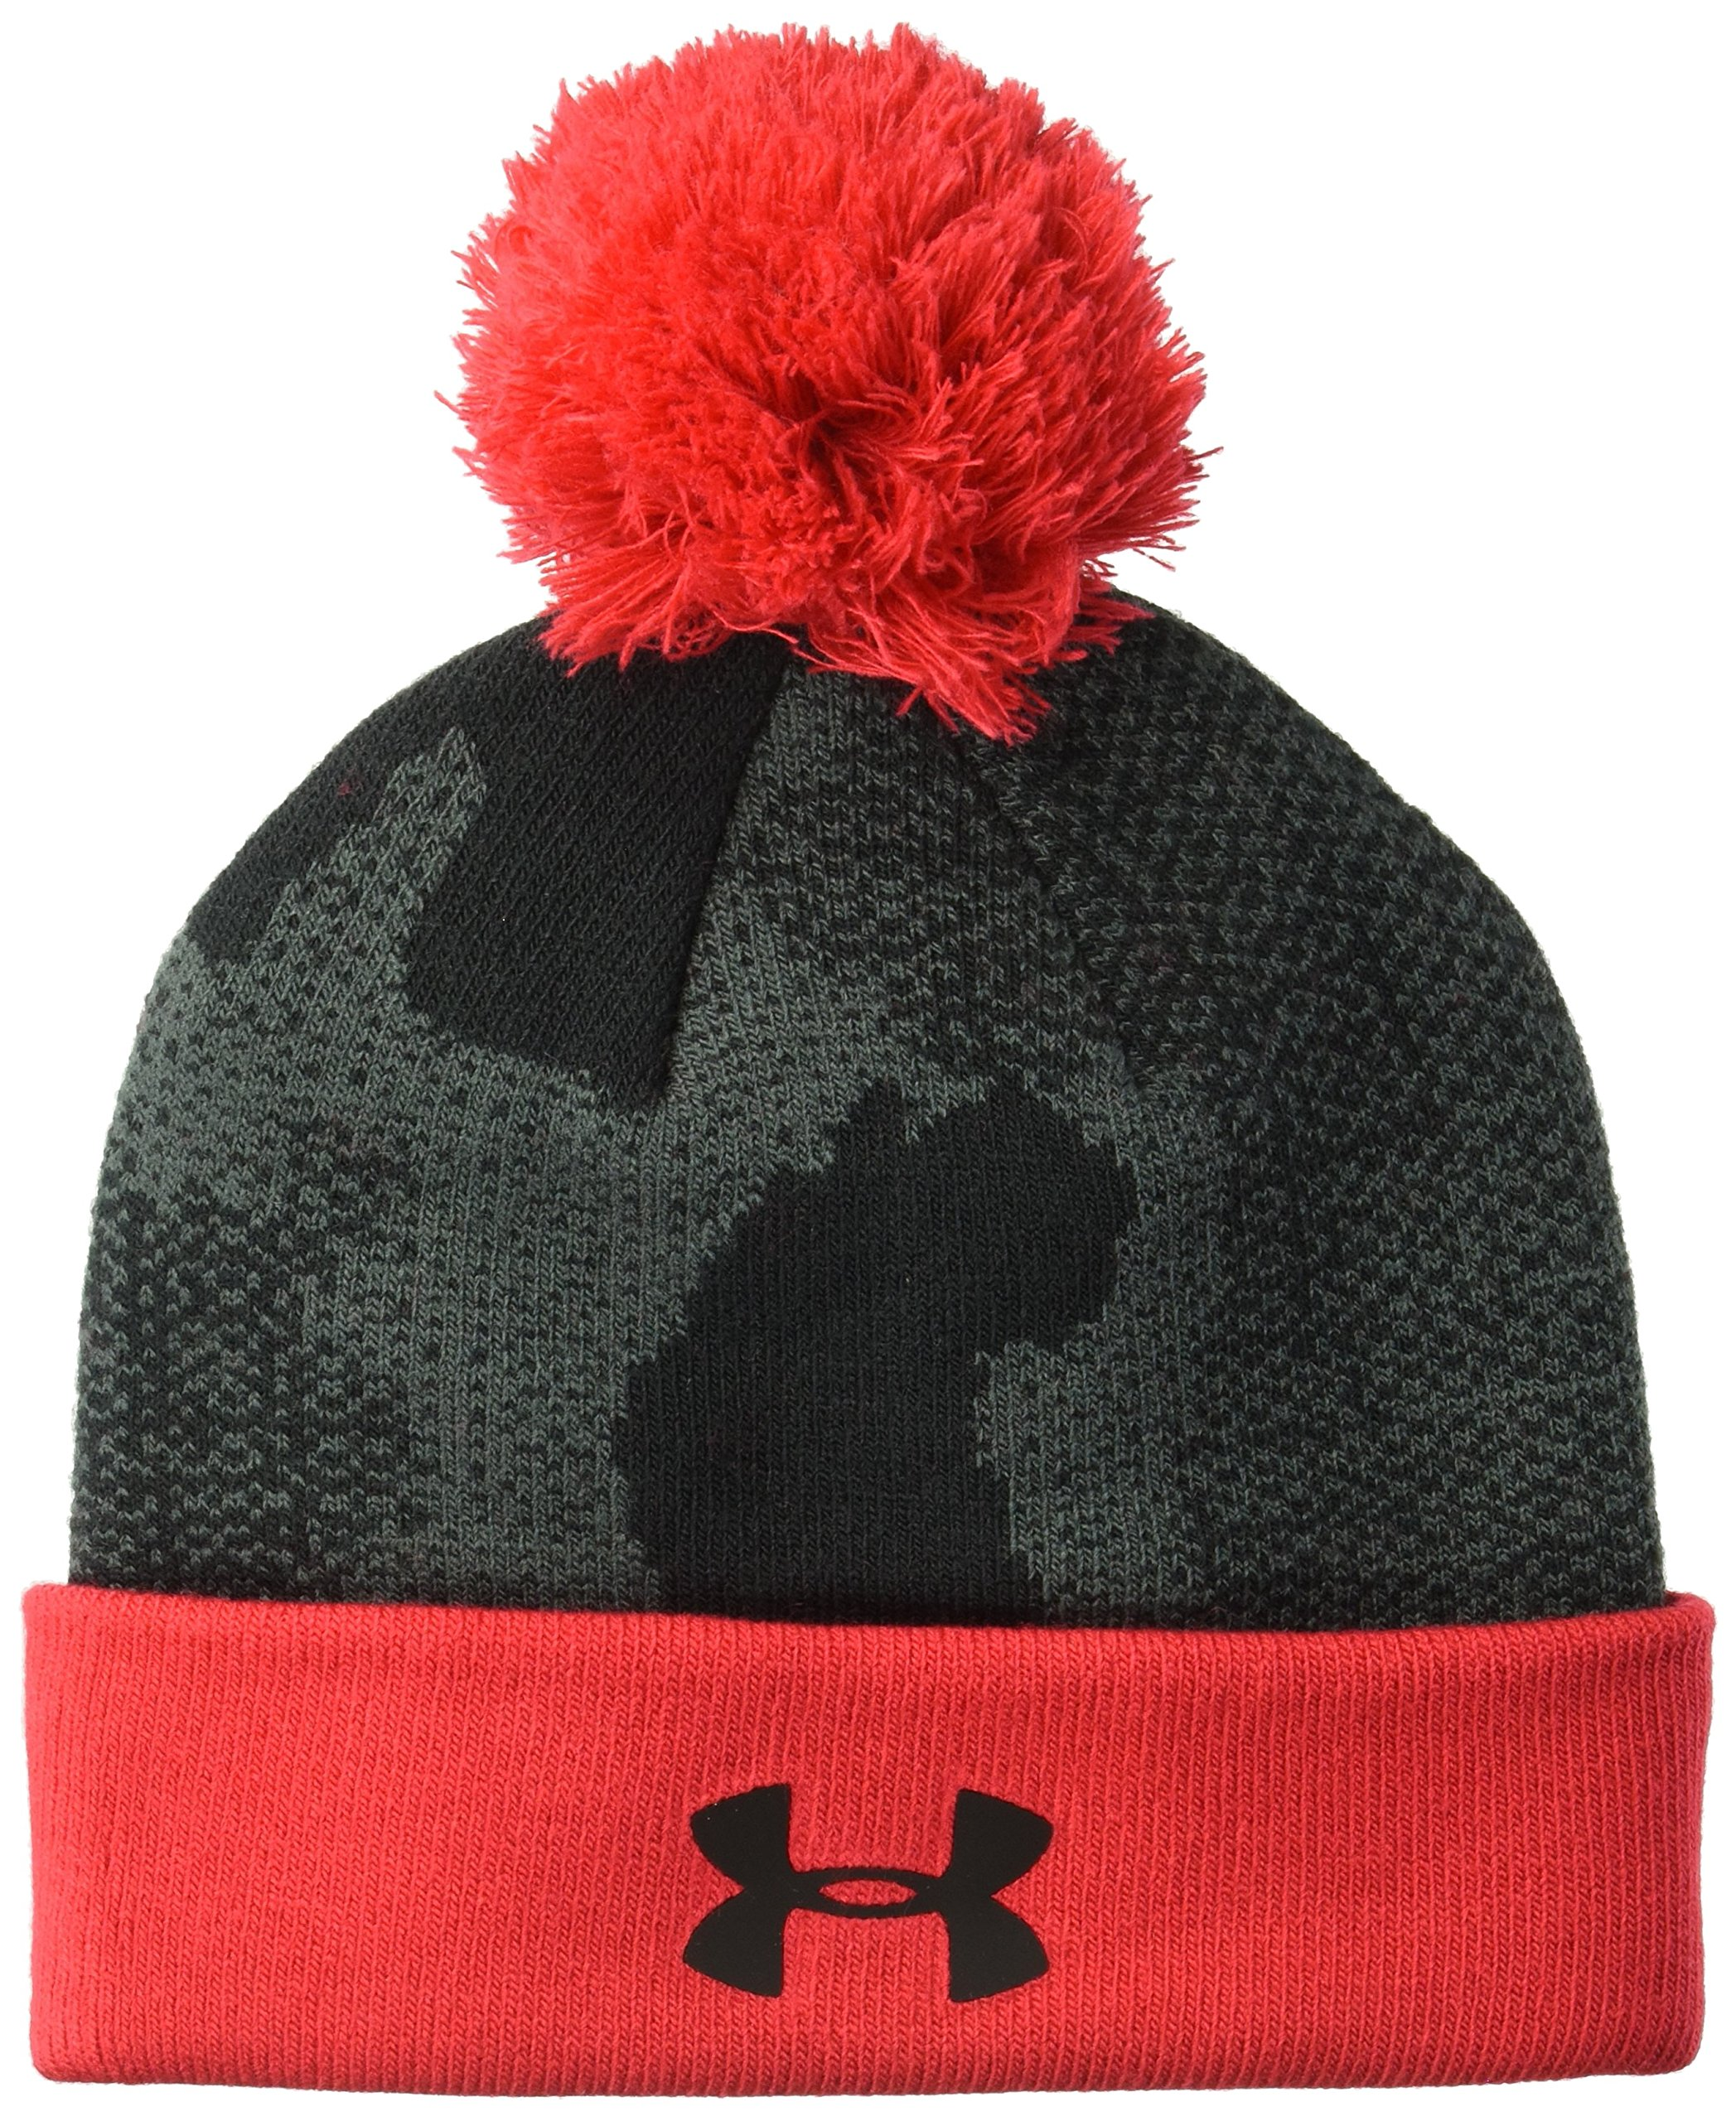 Under Armour Boys Pom Beanie upd, Black (002)/Black, One Size